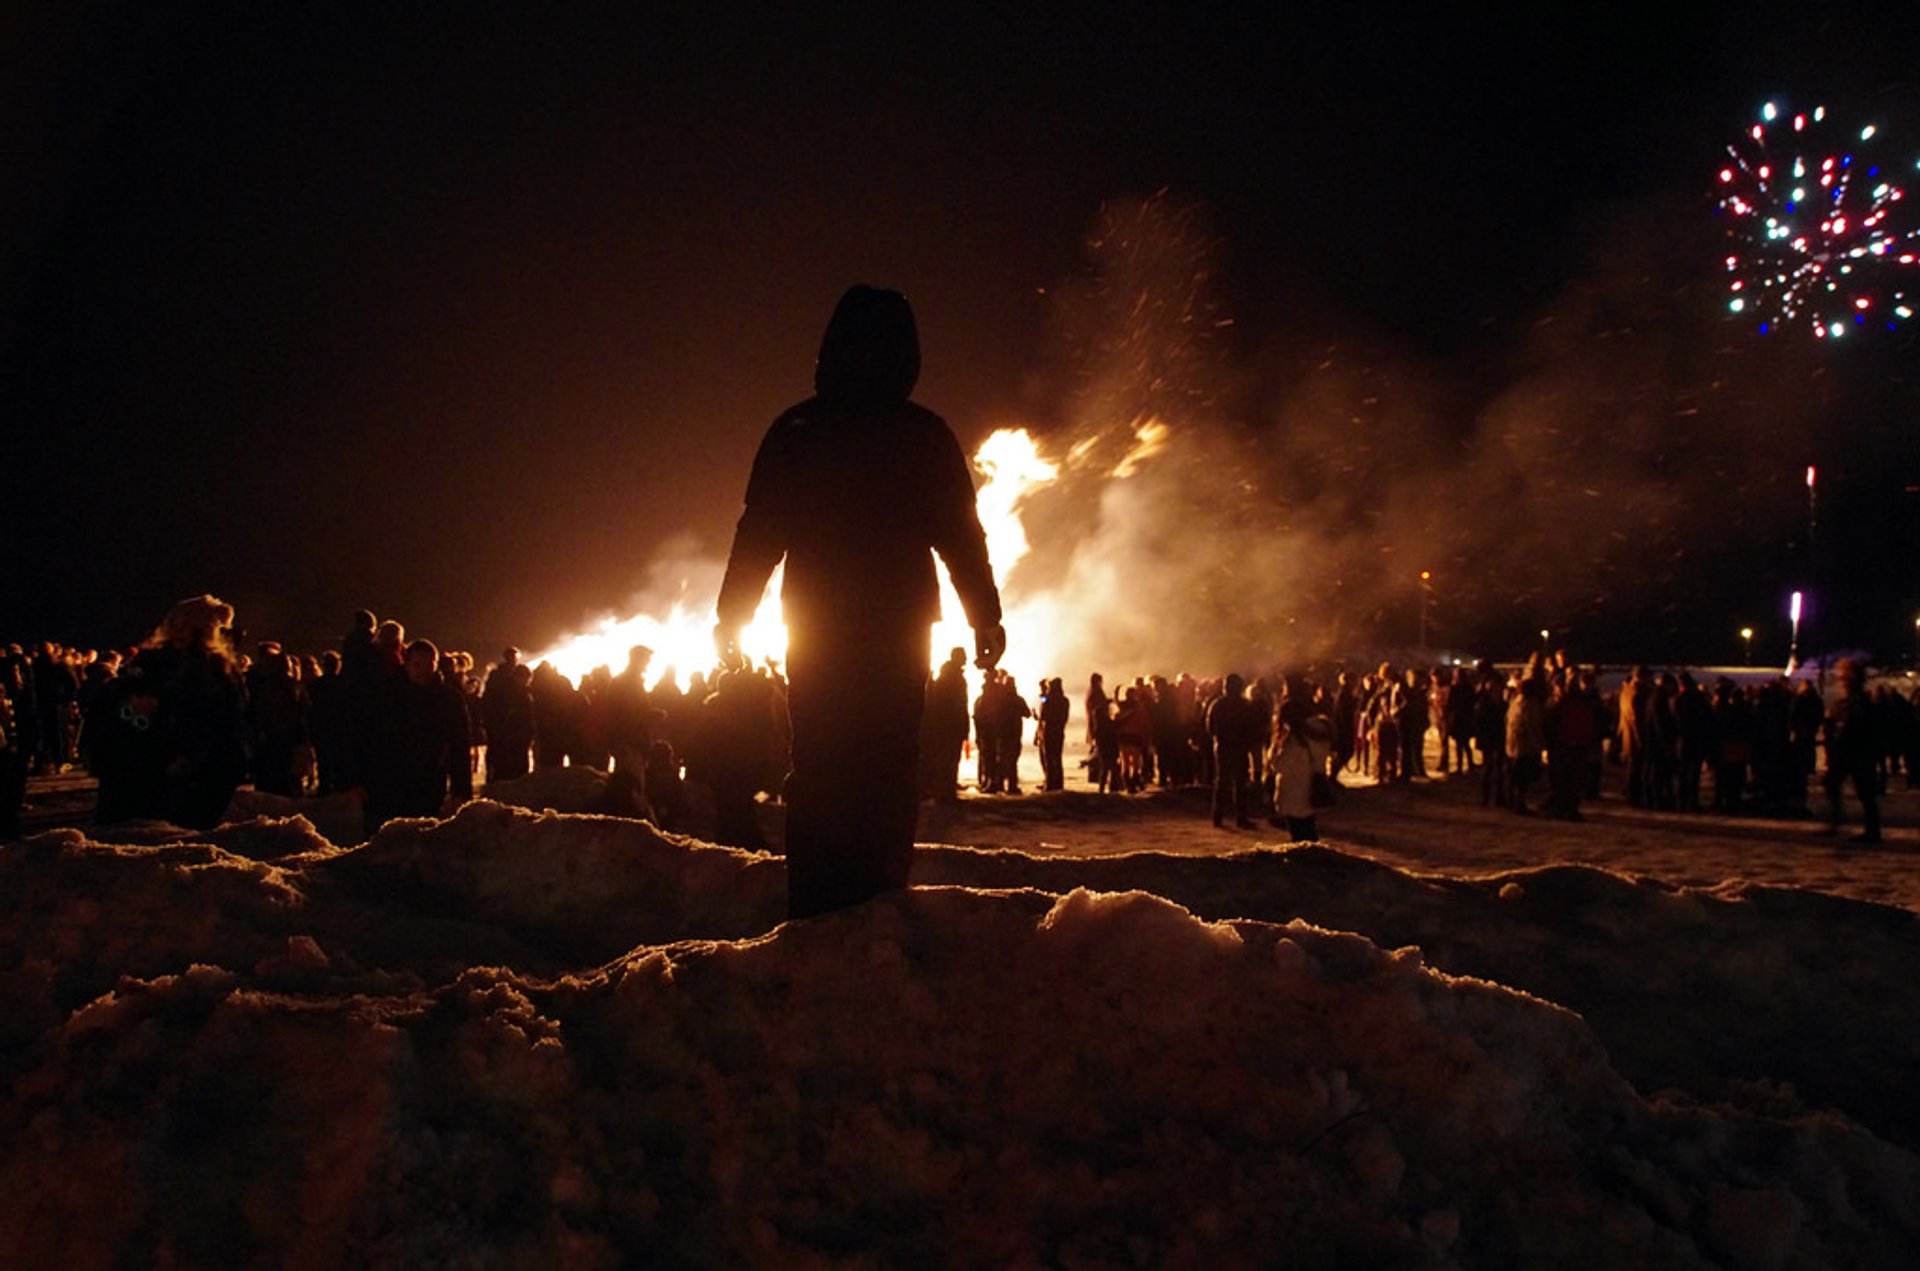 Best time to see New Year's Bonfires in Reykjavik 2019